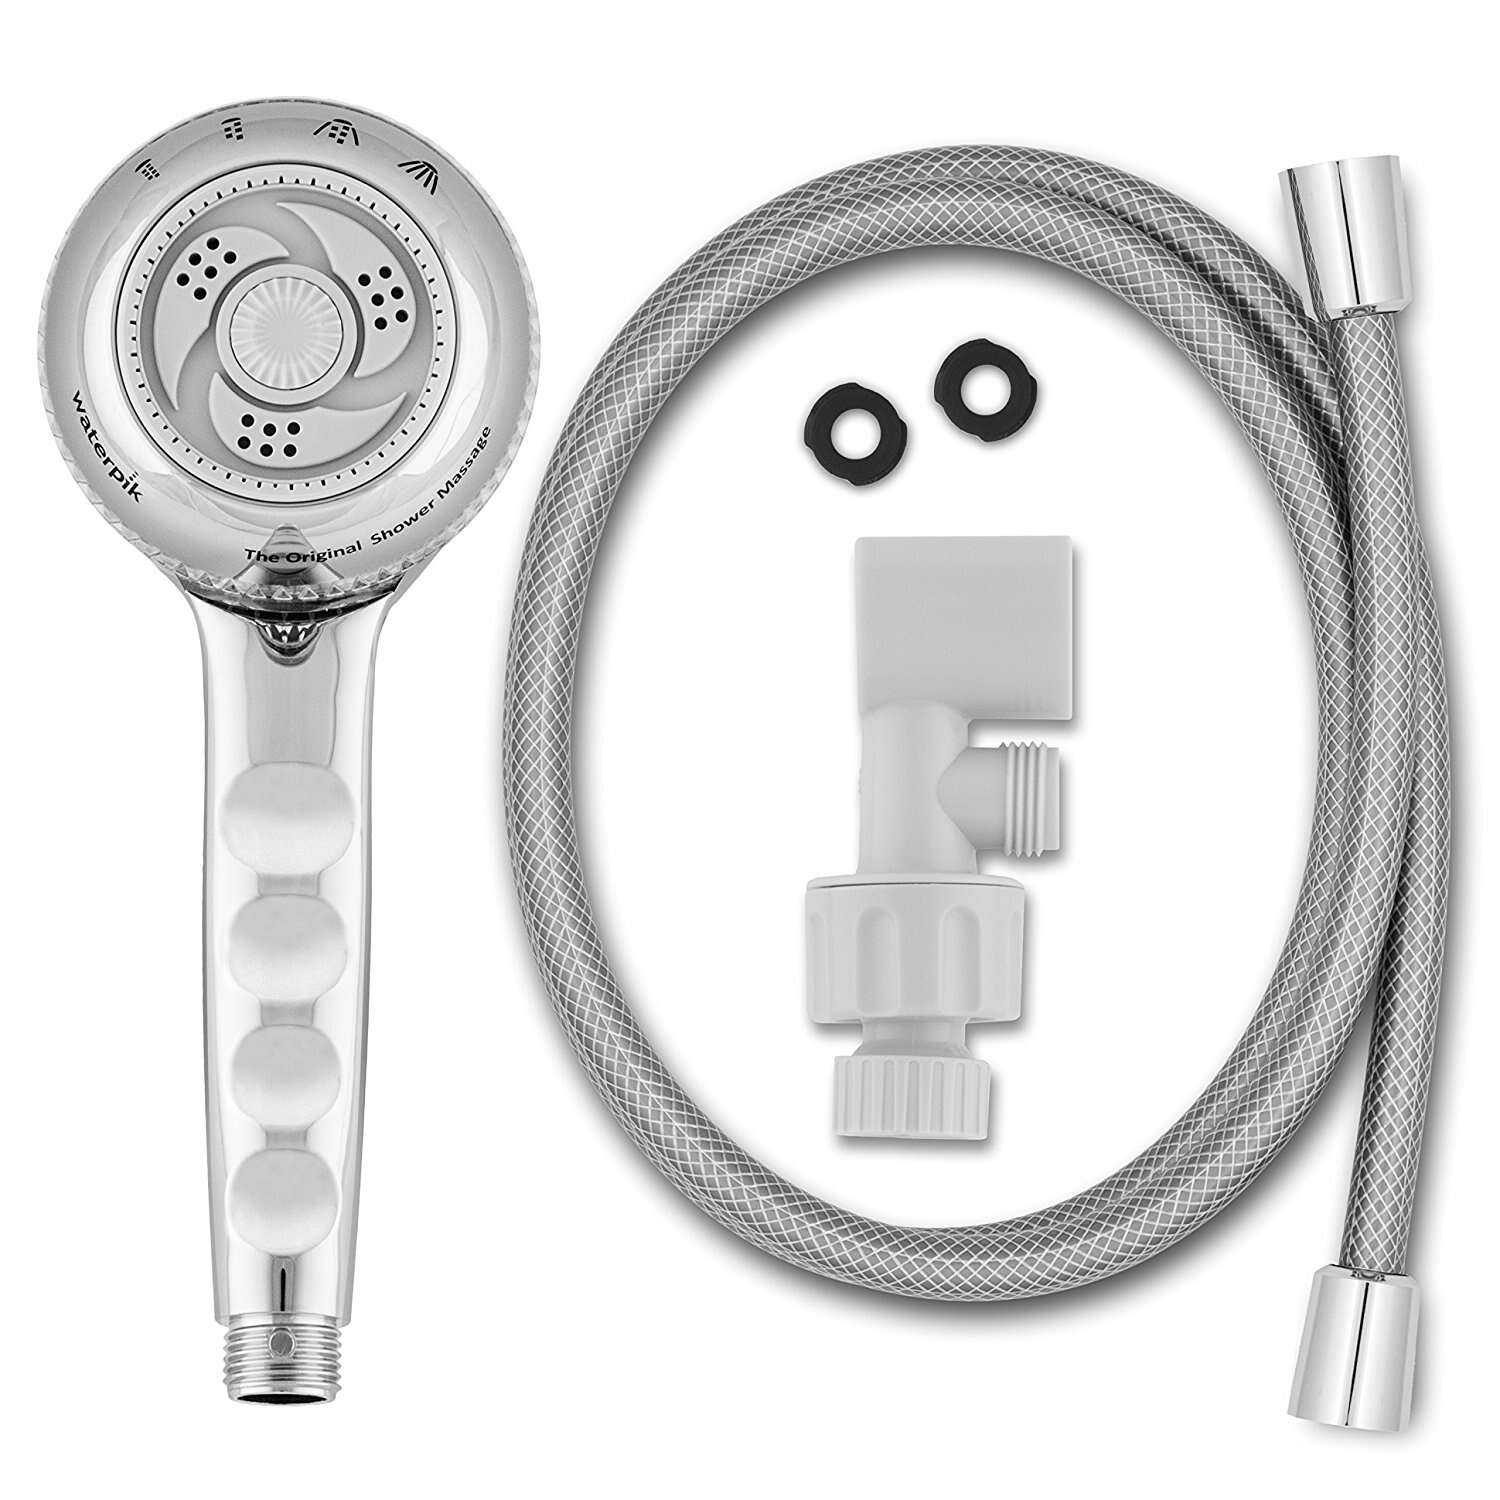 Waterpik  EcoFlow  Chrome  4 settings Showerhead  1.8 gpm